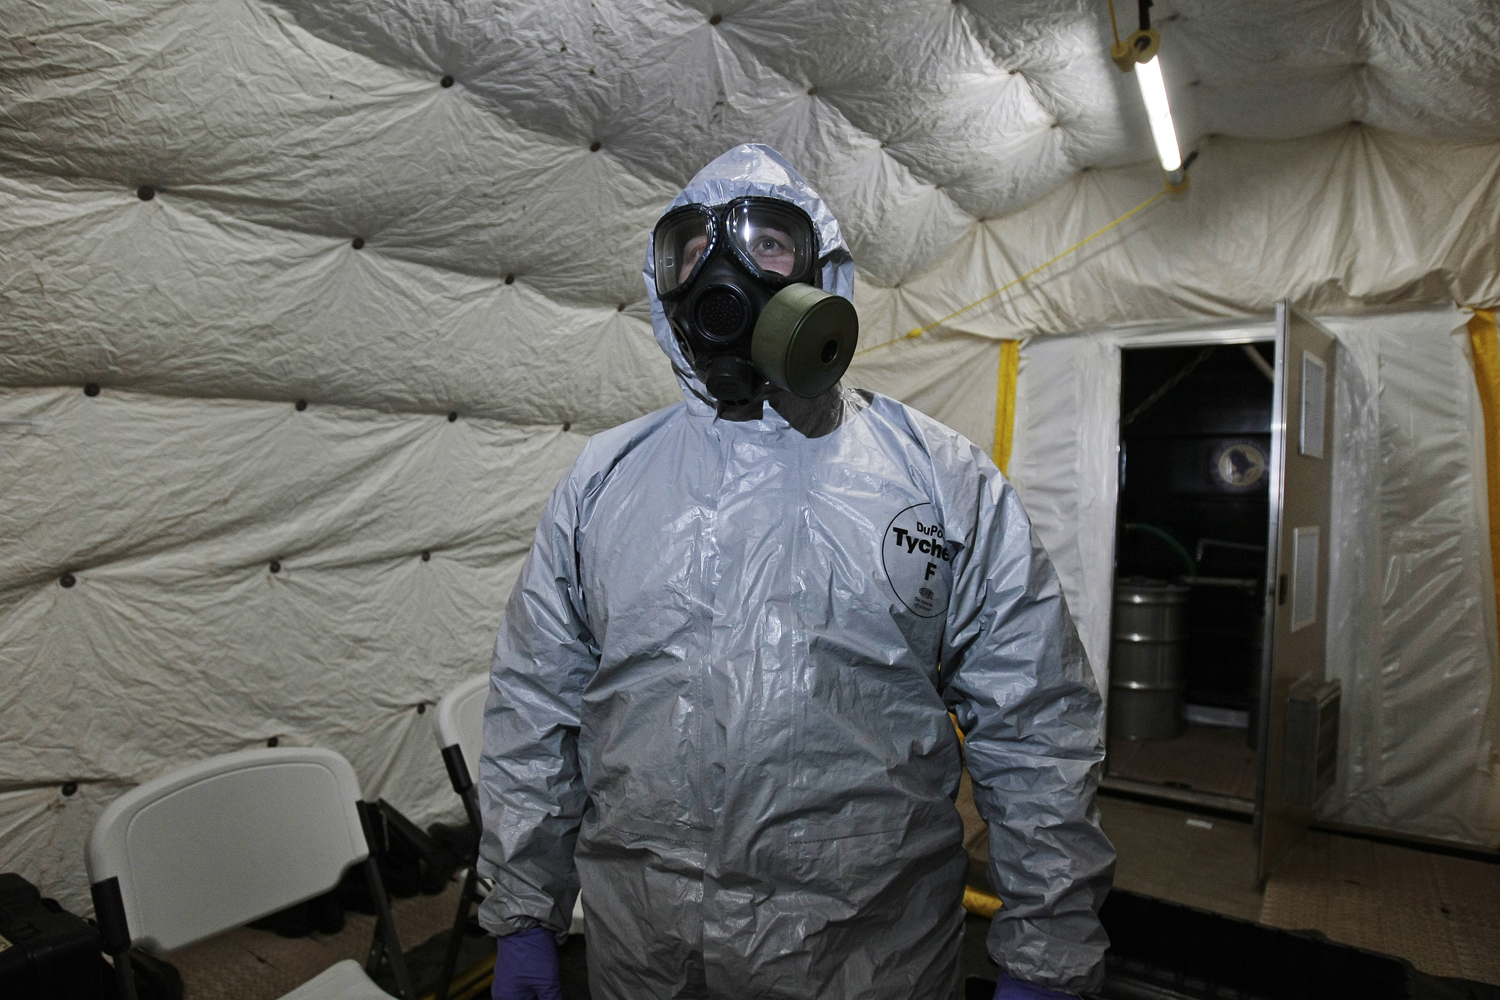 A marine officer of the Cape Ray, a ship equipped to neutralize Syrian chemicals, shows a chemical protection suit  to reporters during a tour around the ship docked at the naval base of Rota used by the U.S, in Spain's southwestern coast on April 10, 2014.